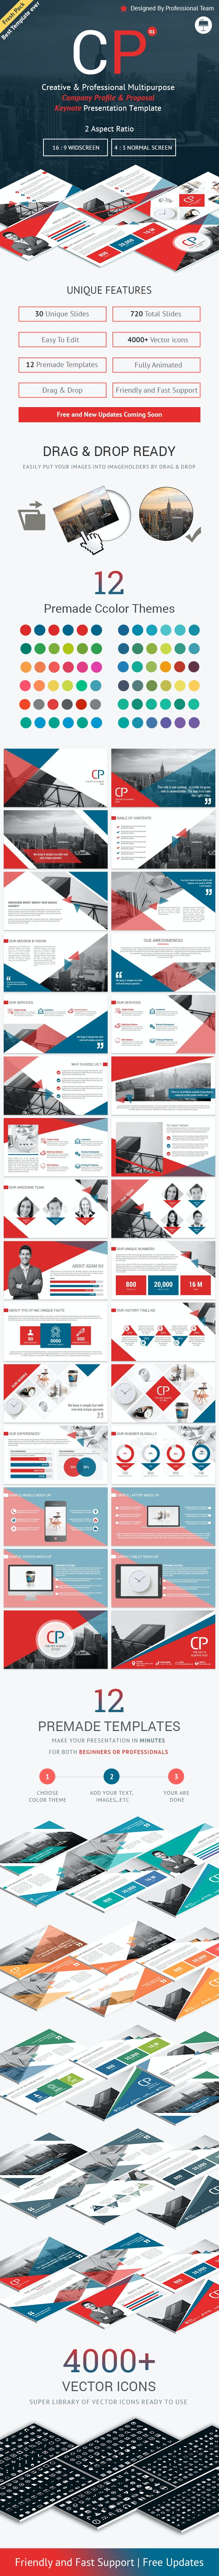 Multipurpose Company Profile and Proposal Keynote Presentation Template - Business Keynote Templates